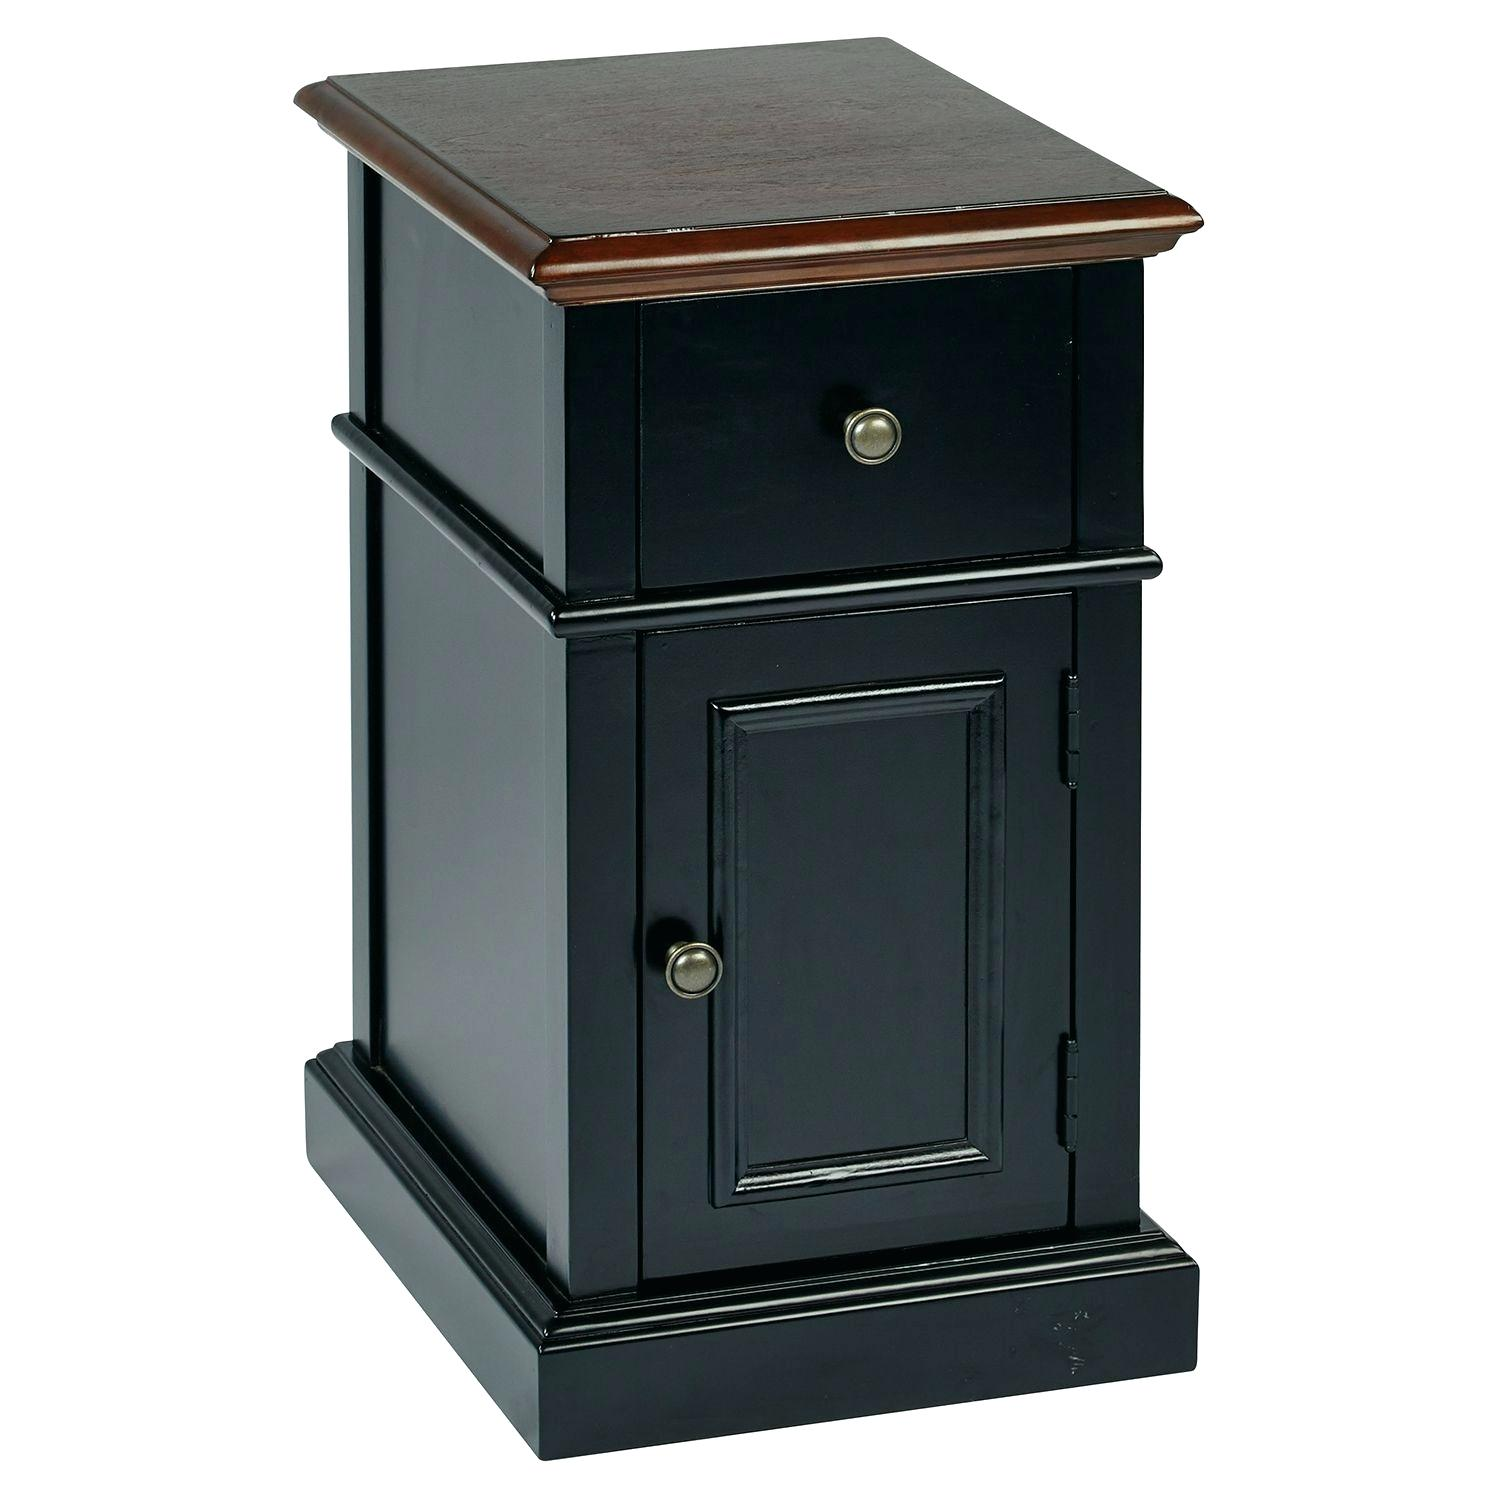 accent table black antique round looknook save this item tables friday kenzie brown patio chair vintage octagon side tiffany lamps half moon console campaign target kitchen